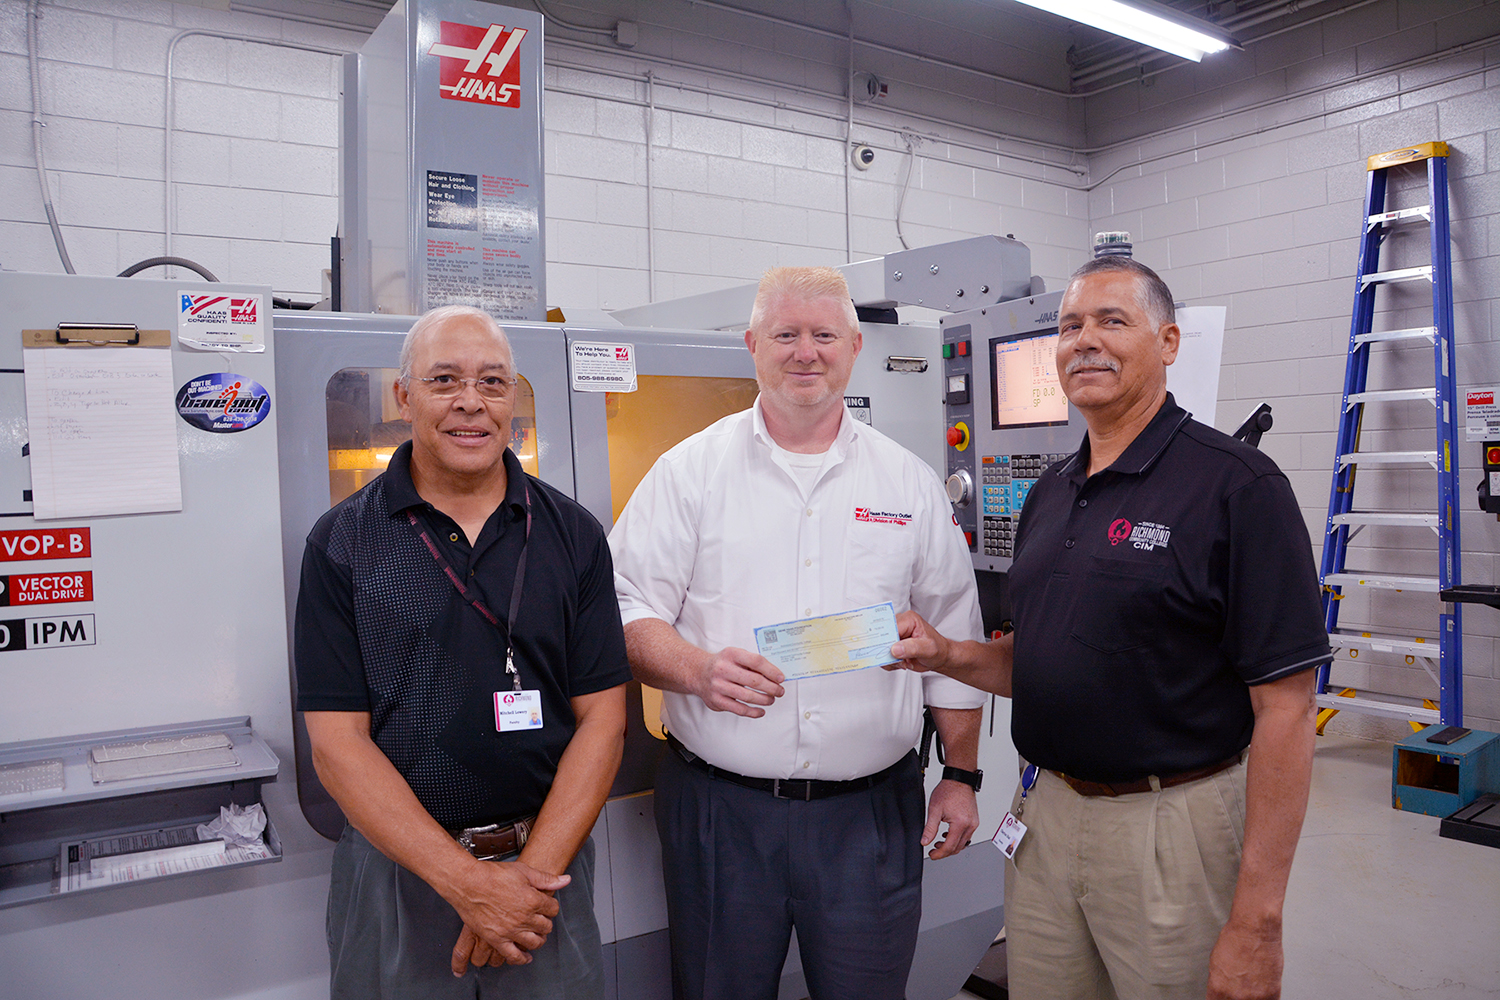 Haas Foundation representative presents check to the two machining instructors